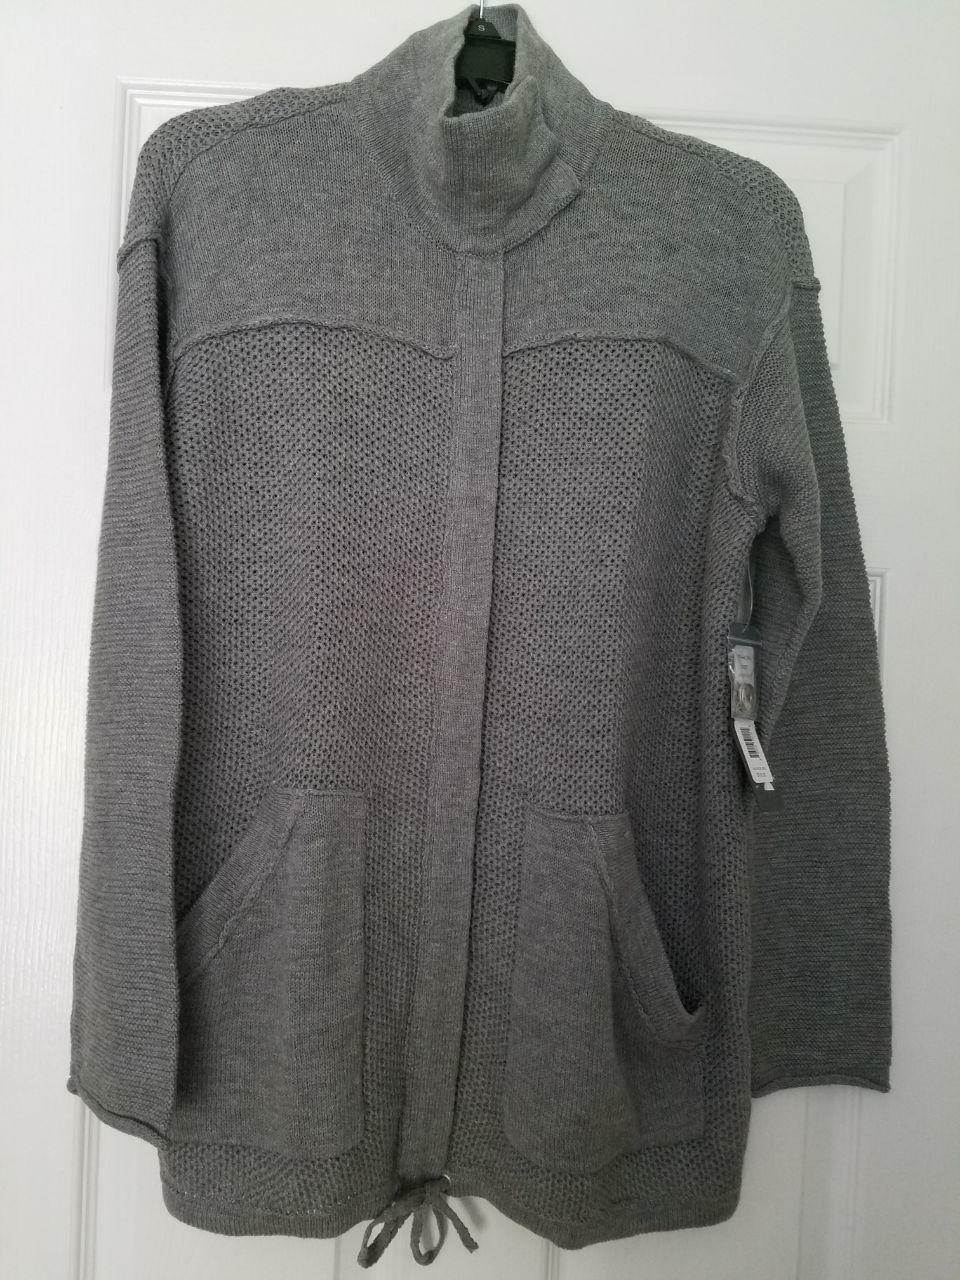 NWT Michel Stars Zip Up Knit Anorak Long Sleeves Heather Grey Size M L SC627